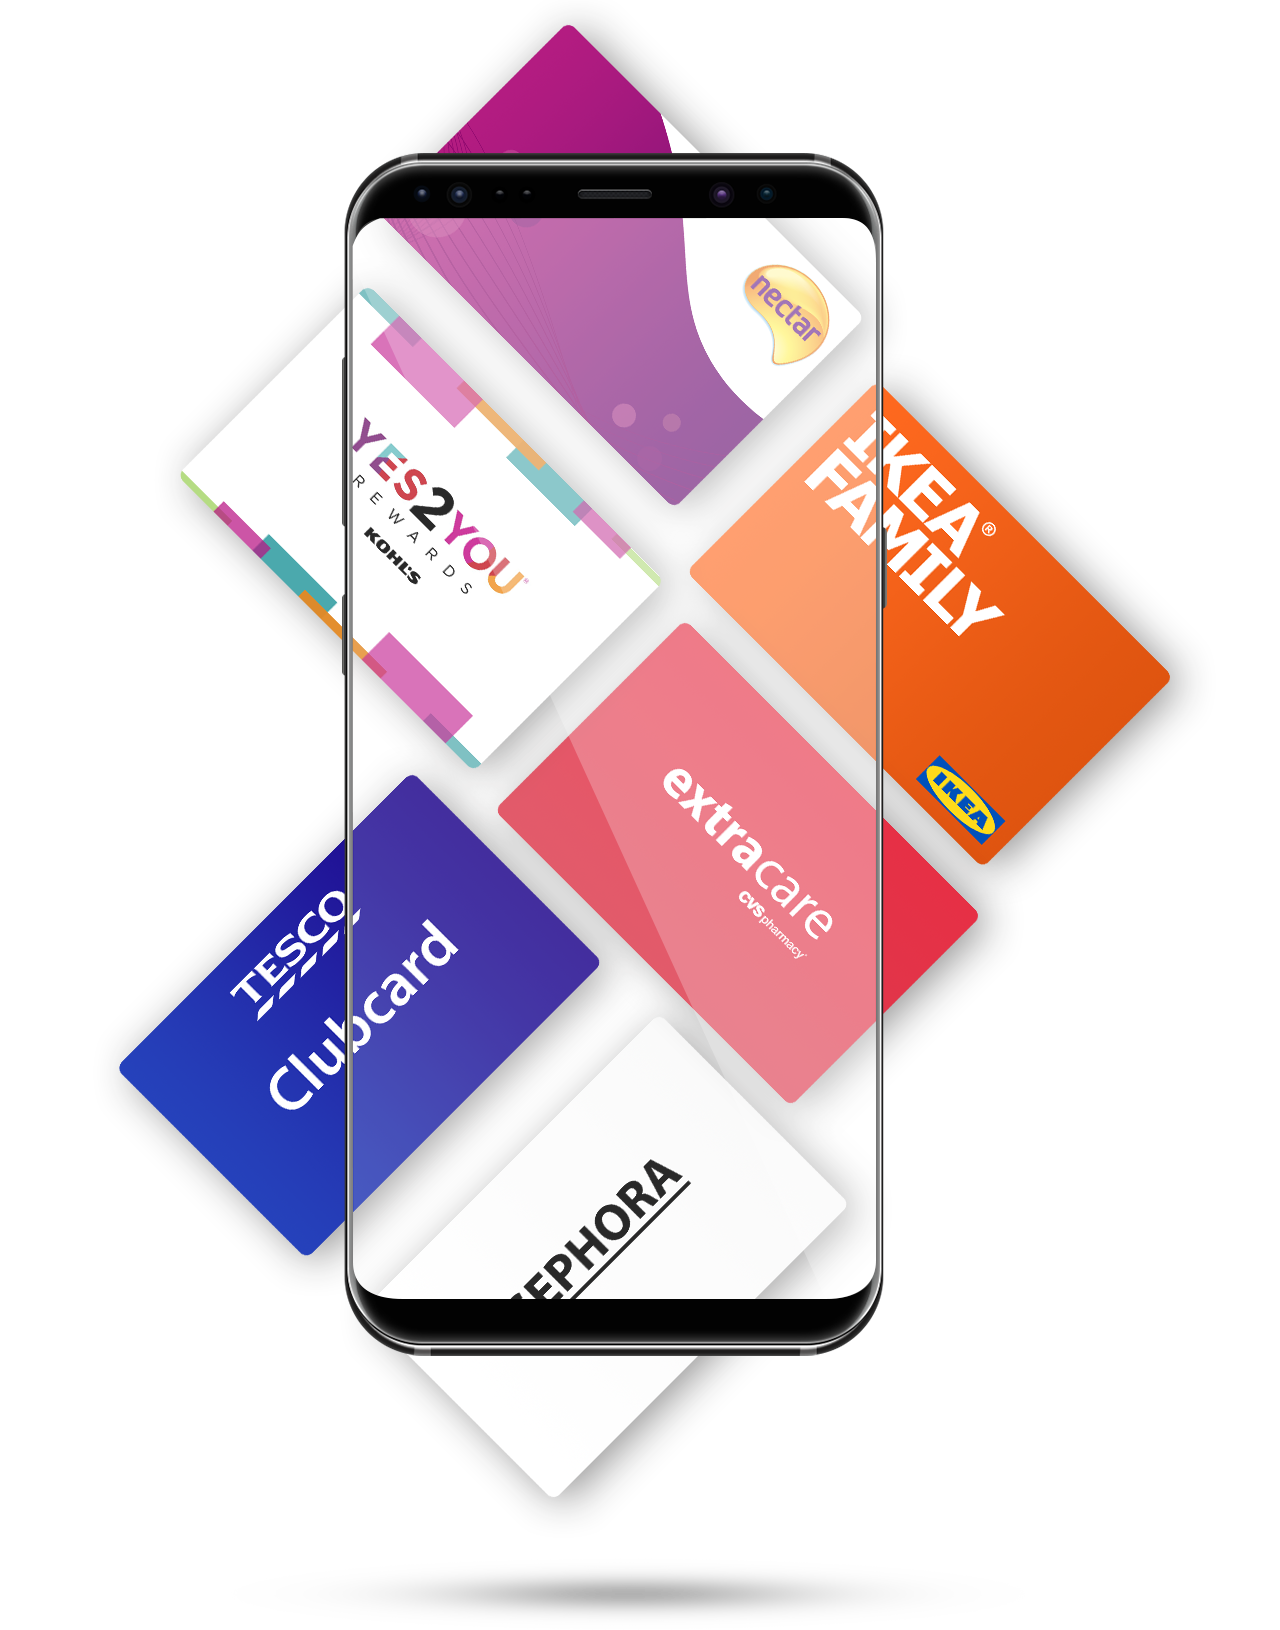 iCard - The digital wallet you can trust  No monthly fees  Plenty of